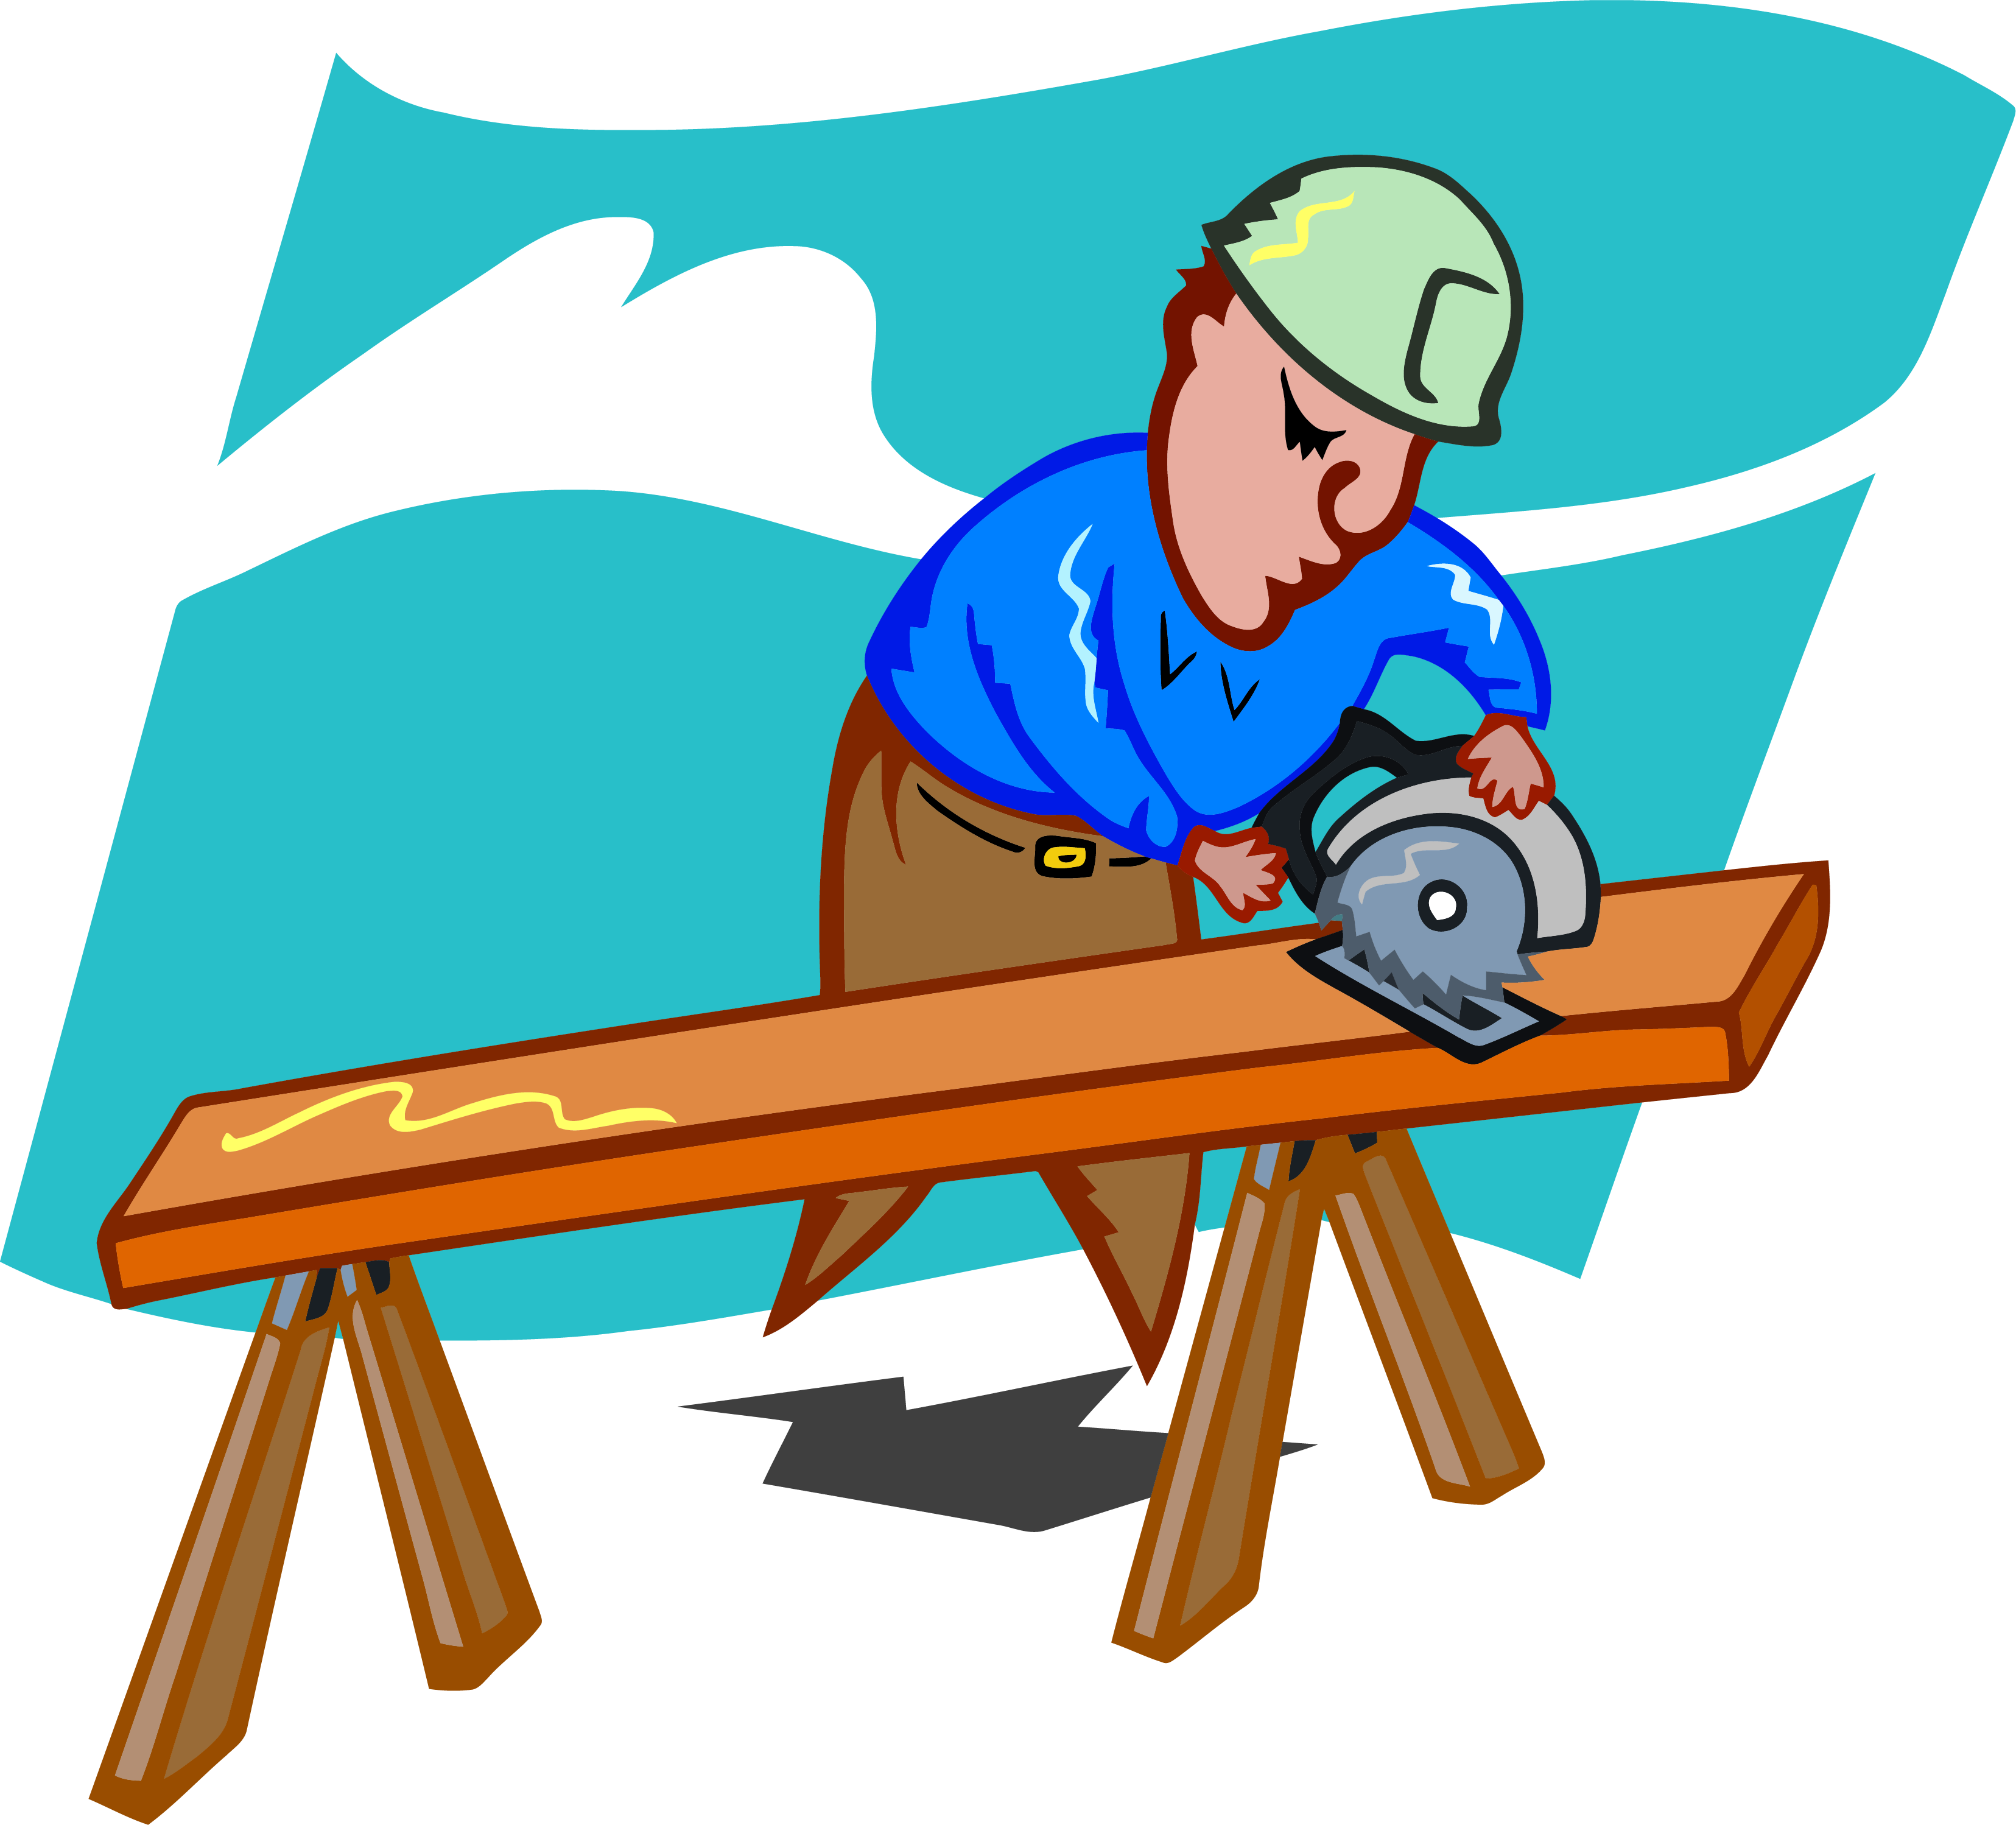 Carpentry building house clipart clipart library Carpentry clipart builder FREE for download on rpelm clipart library